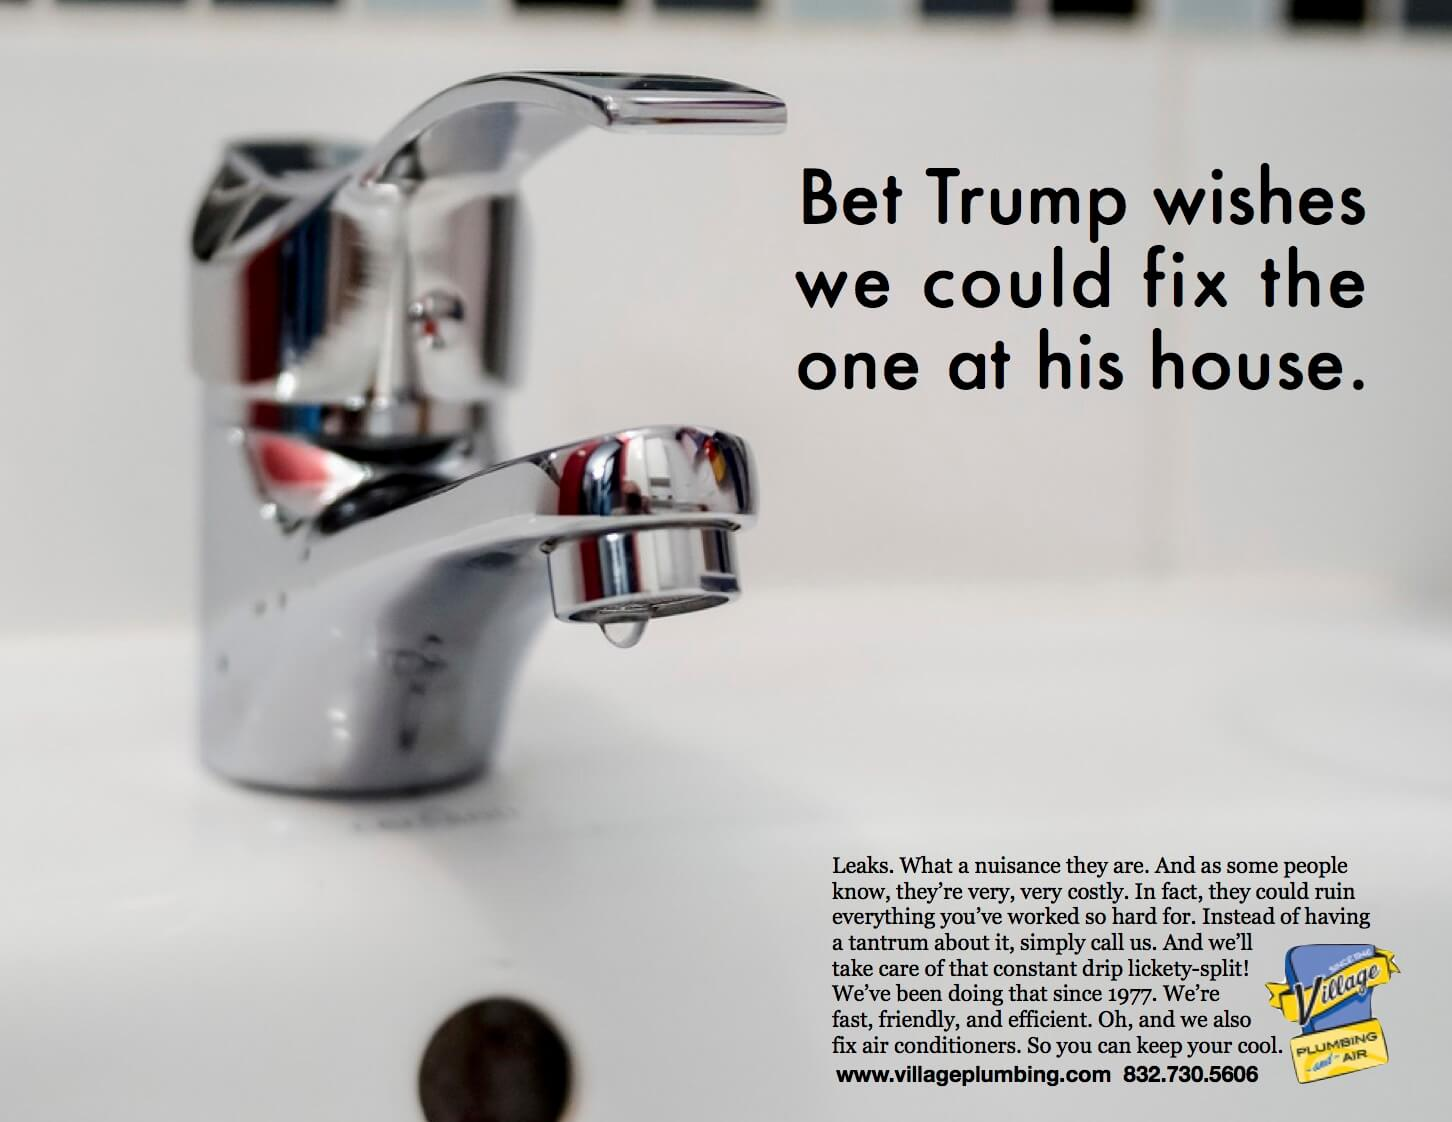 Village Plumbing ad with a leaky faucet and the headline